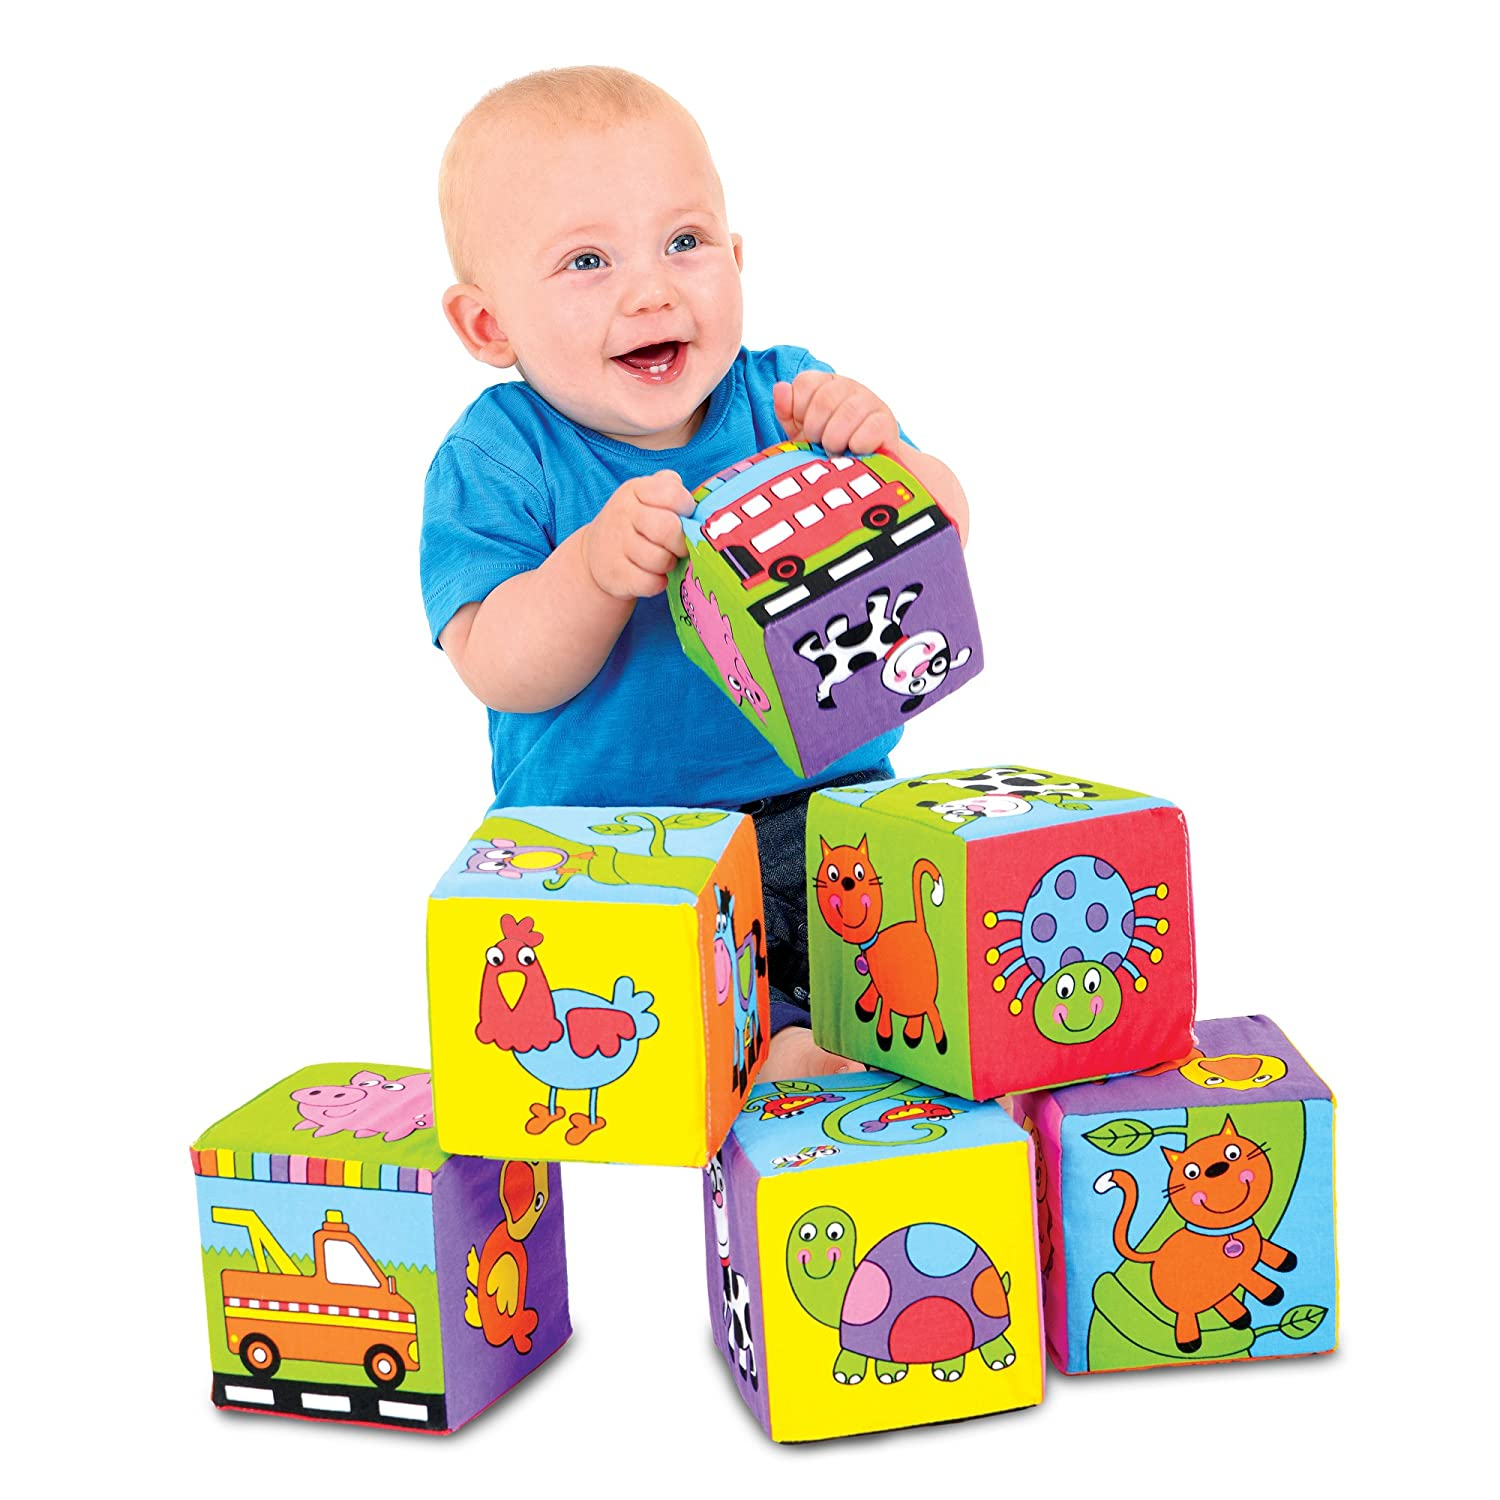 Galt Toys Baby Soft Blocks Galt Toys Amazon Toys & Games